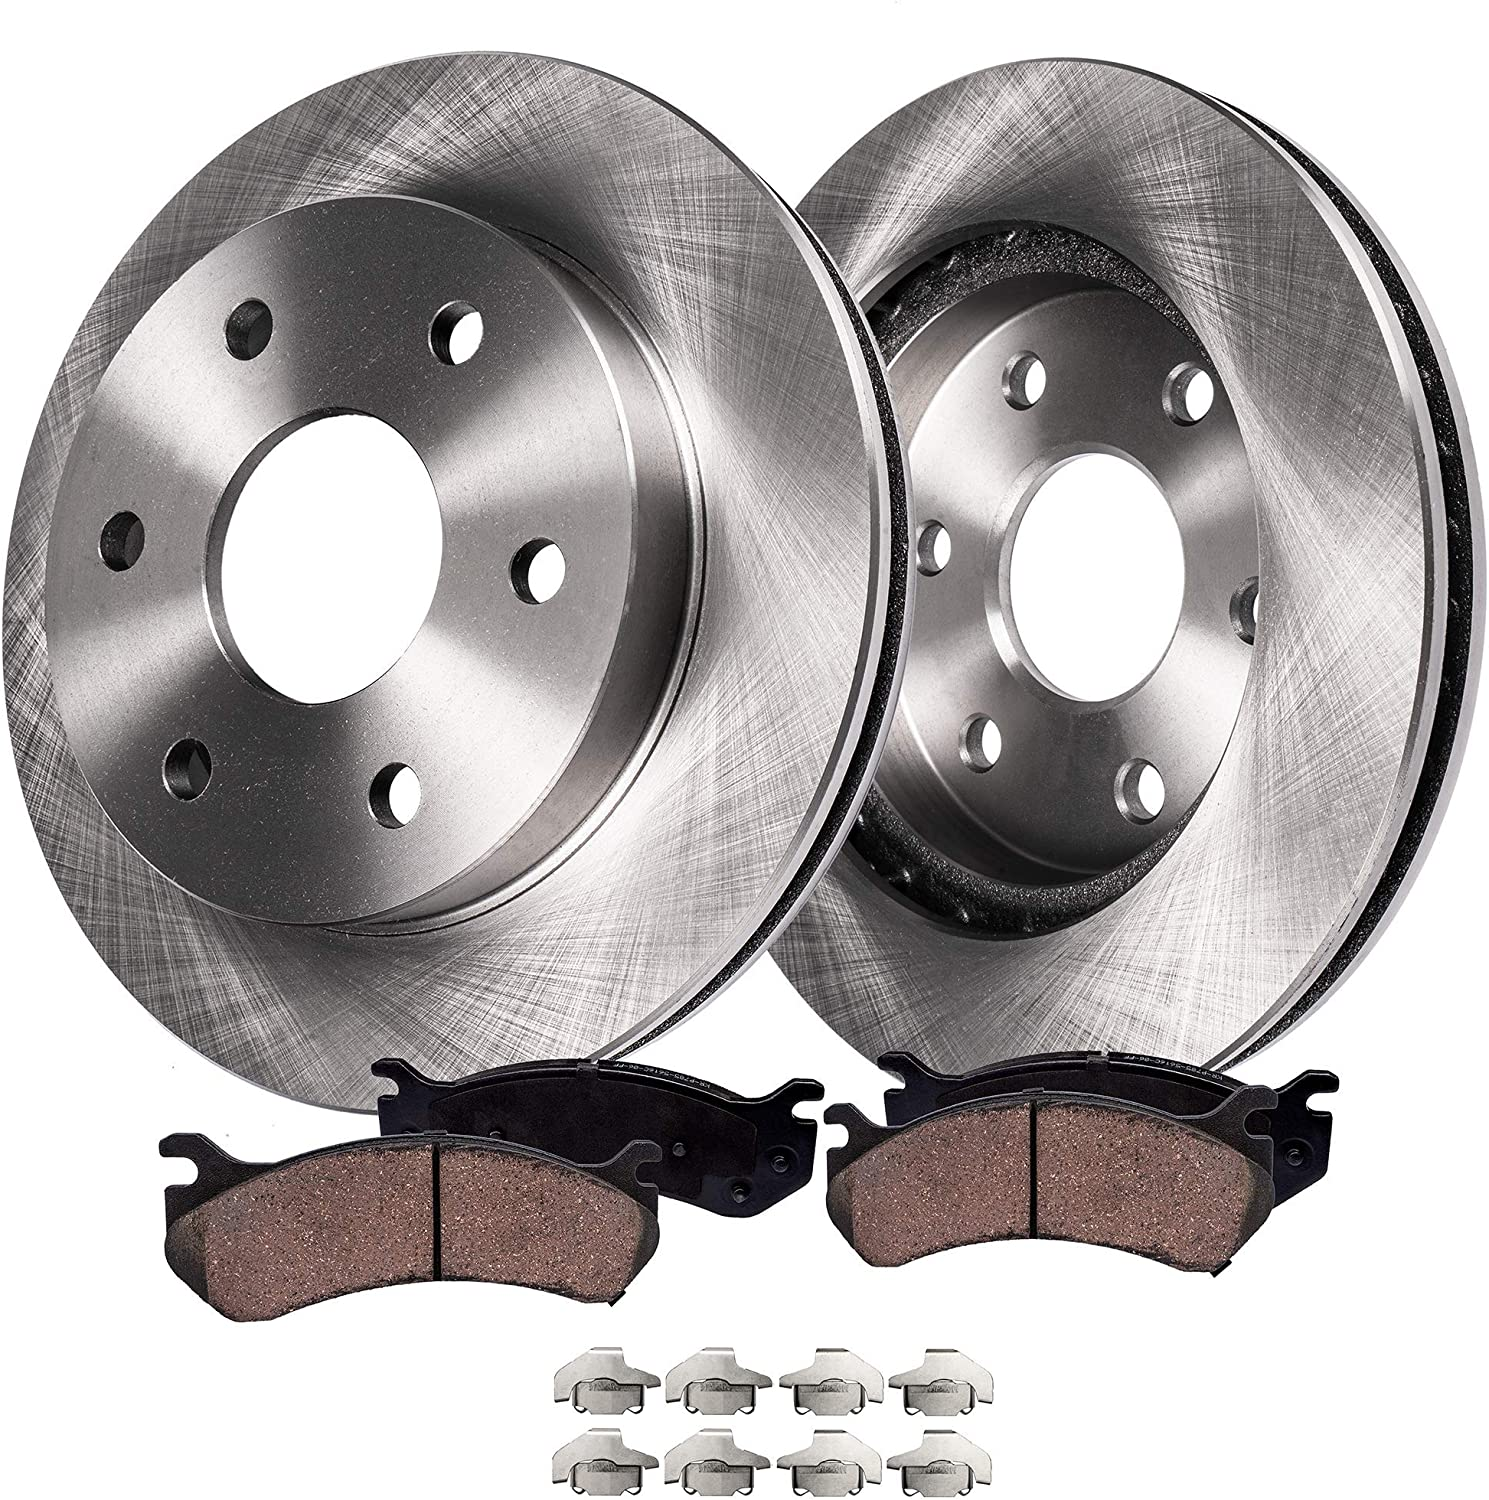 Hardware Kits Not Included 2015 fits Nissan Frontier SV Front Ceramic Brake Pads with Two Years Manufacturer Warranty DNA